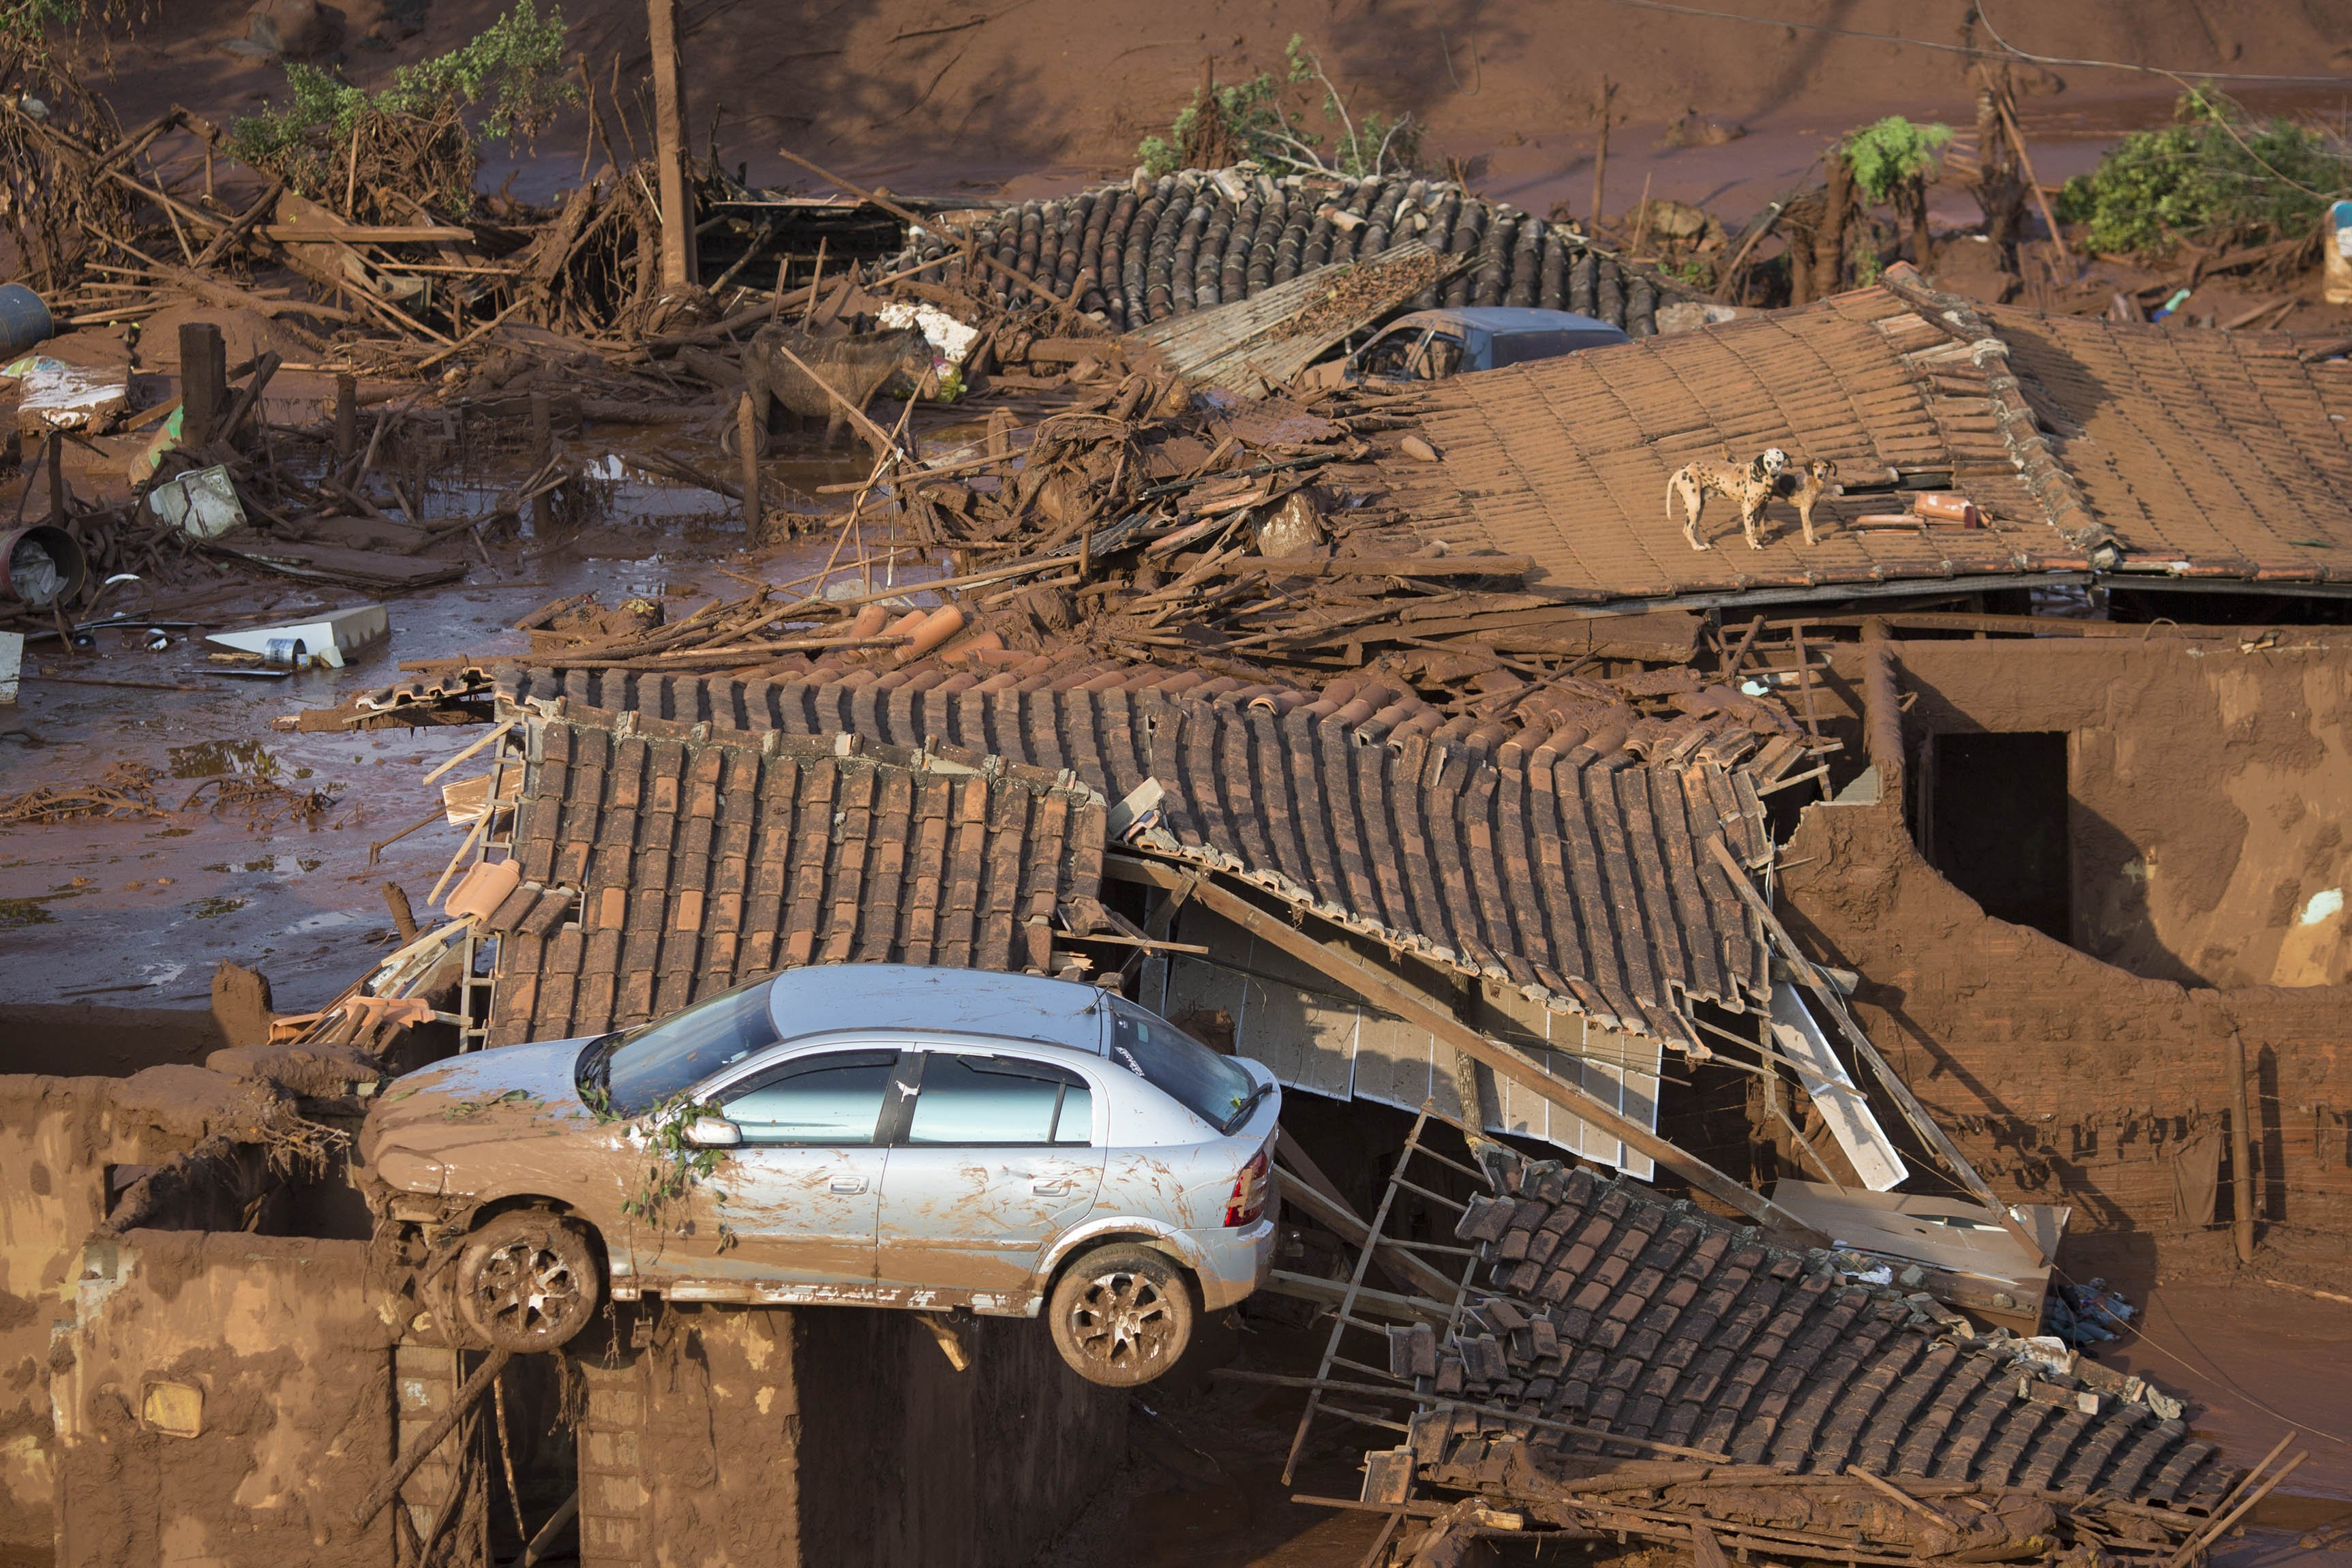 A car and two dogs are seen on the roof of destroyed houses at the small town of Bento Rodrigues after a dam burst in Minas Gerais state, Brazil, on Nov. 6, 2015.